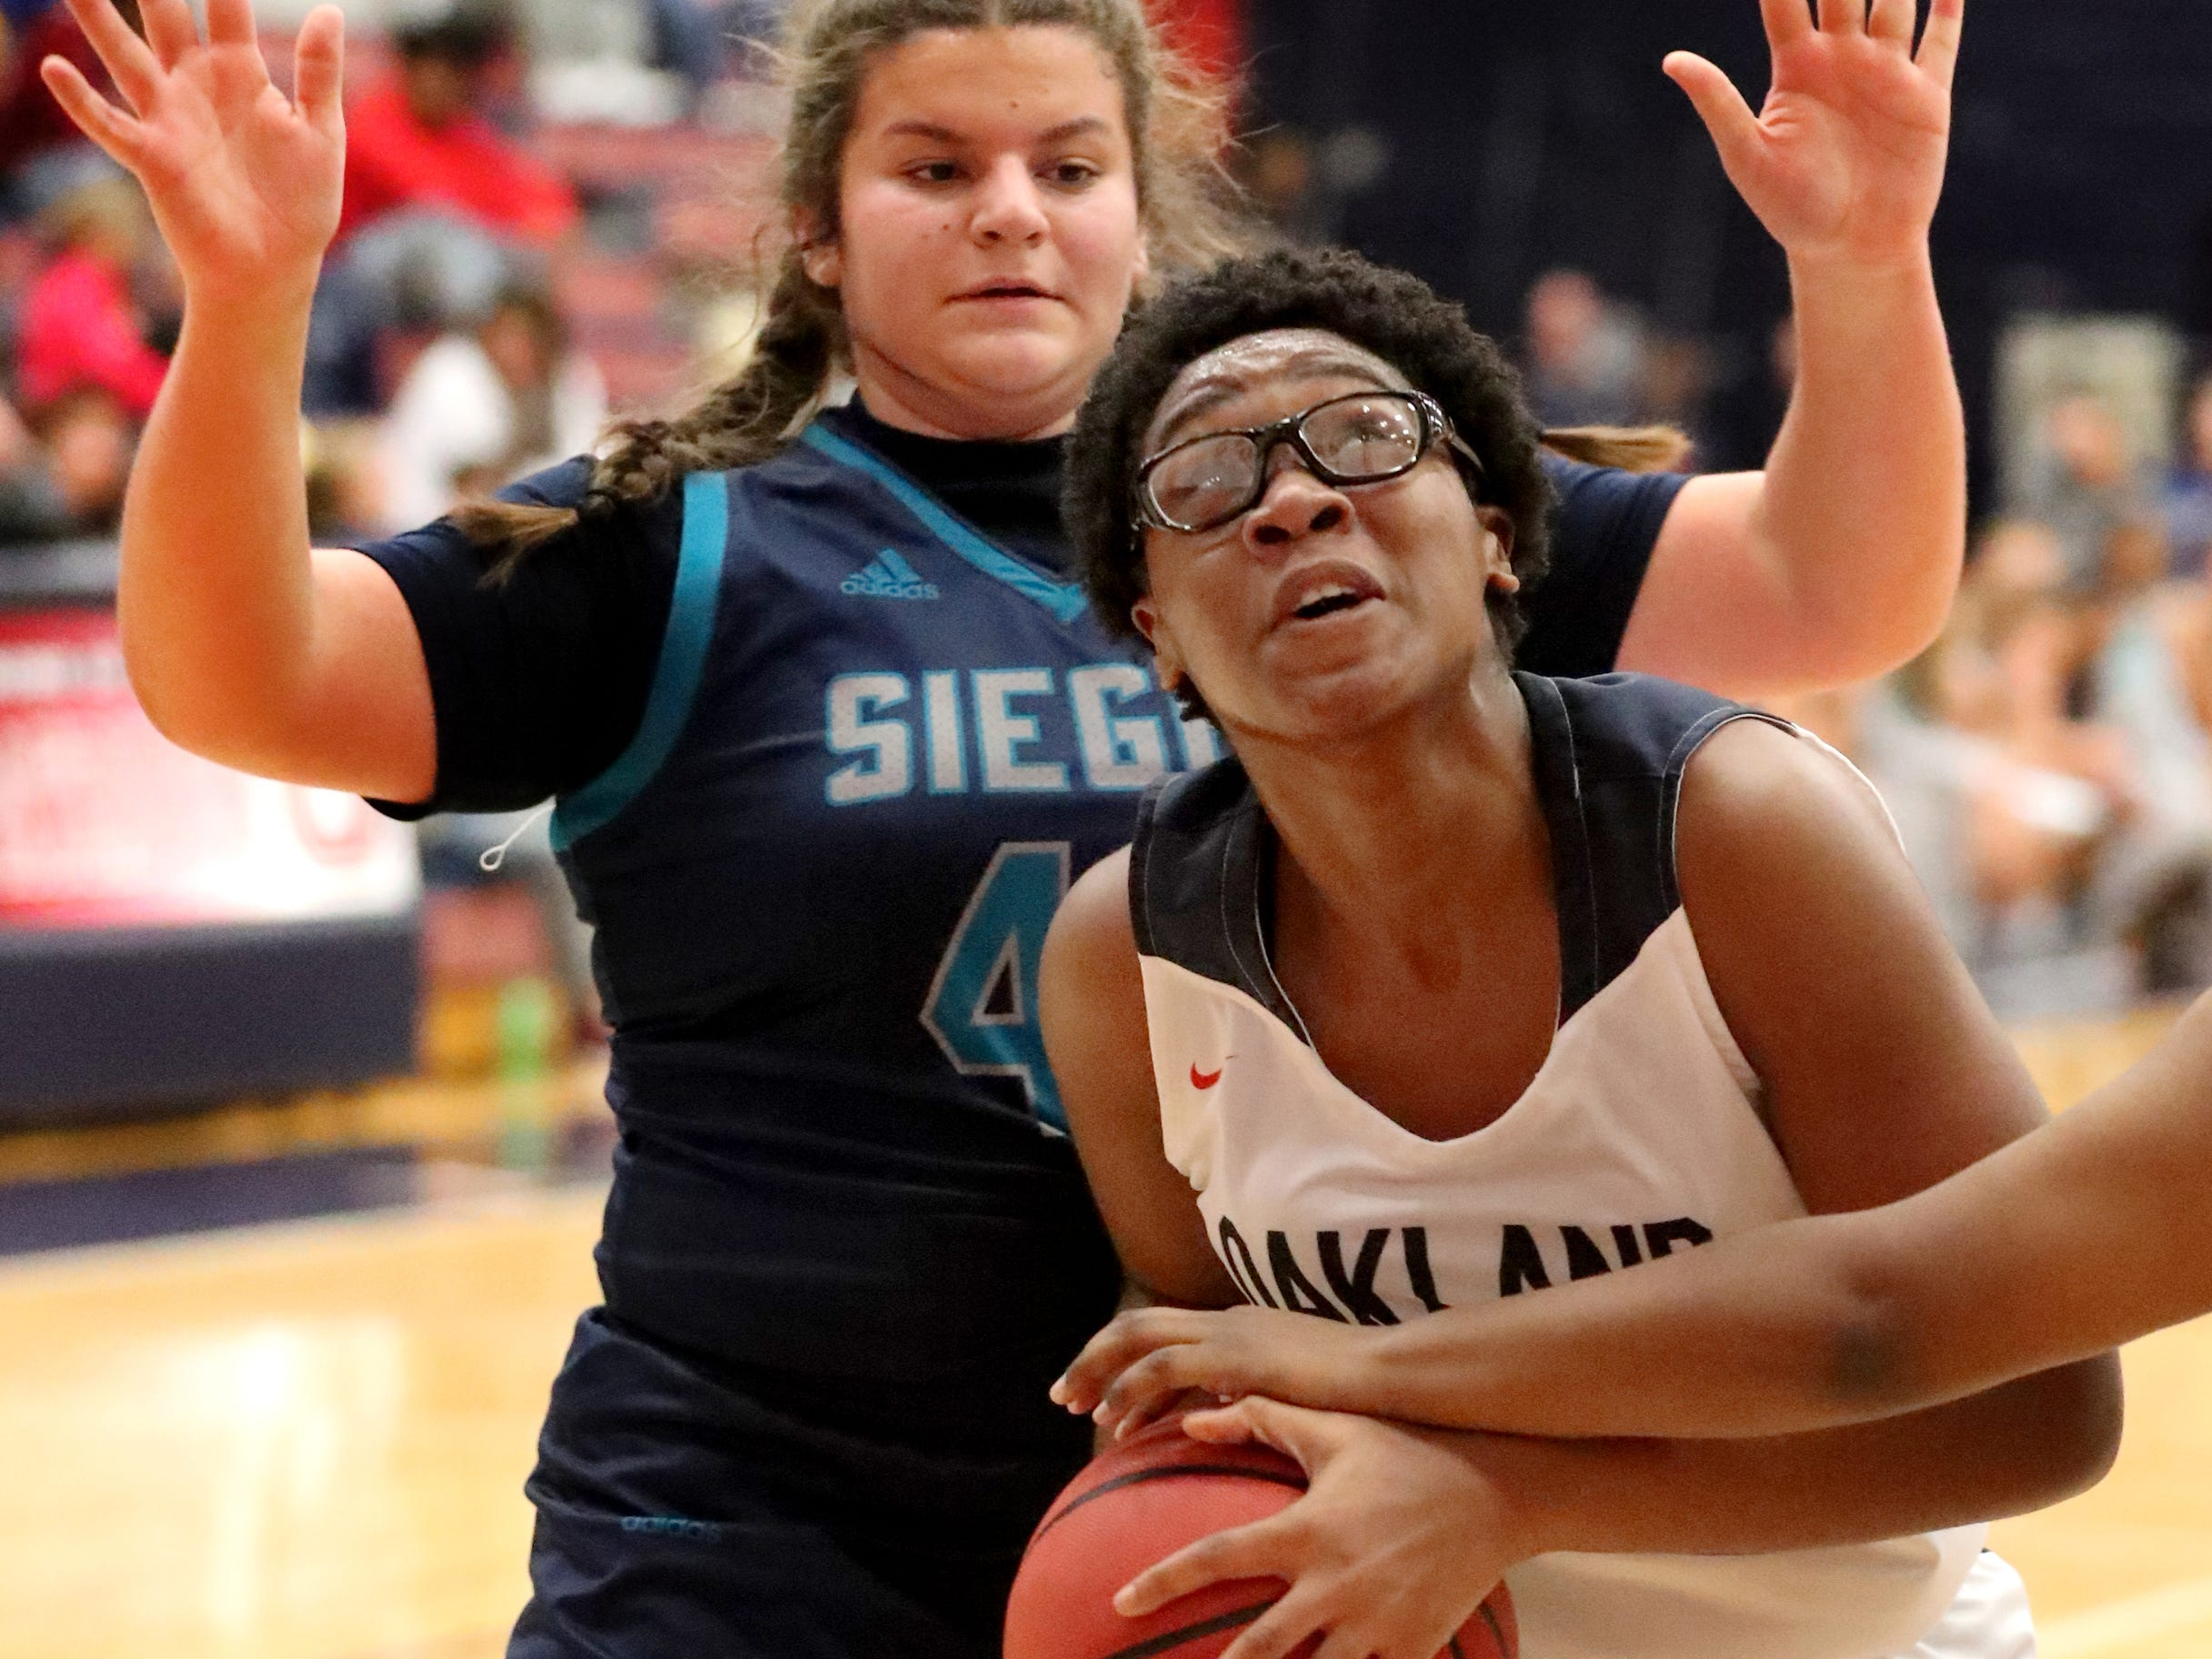 Oakland's Nicole Egeruoh (42) goes up for a shot as Siegel's Genesis Sneed (40) and Erin Vanhook (42) guard her during the game at Oakland on Tuesday, Dec.. 4, 2018.